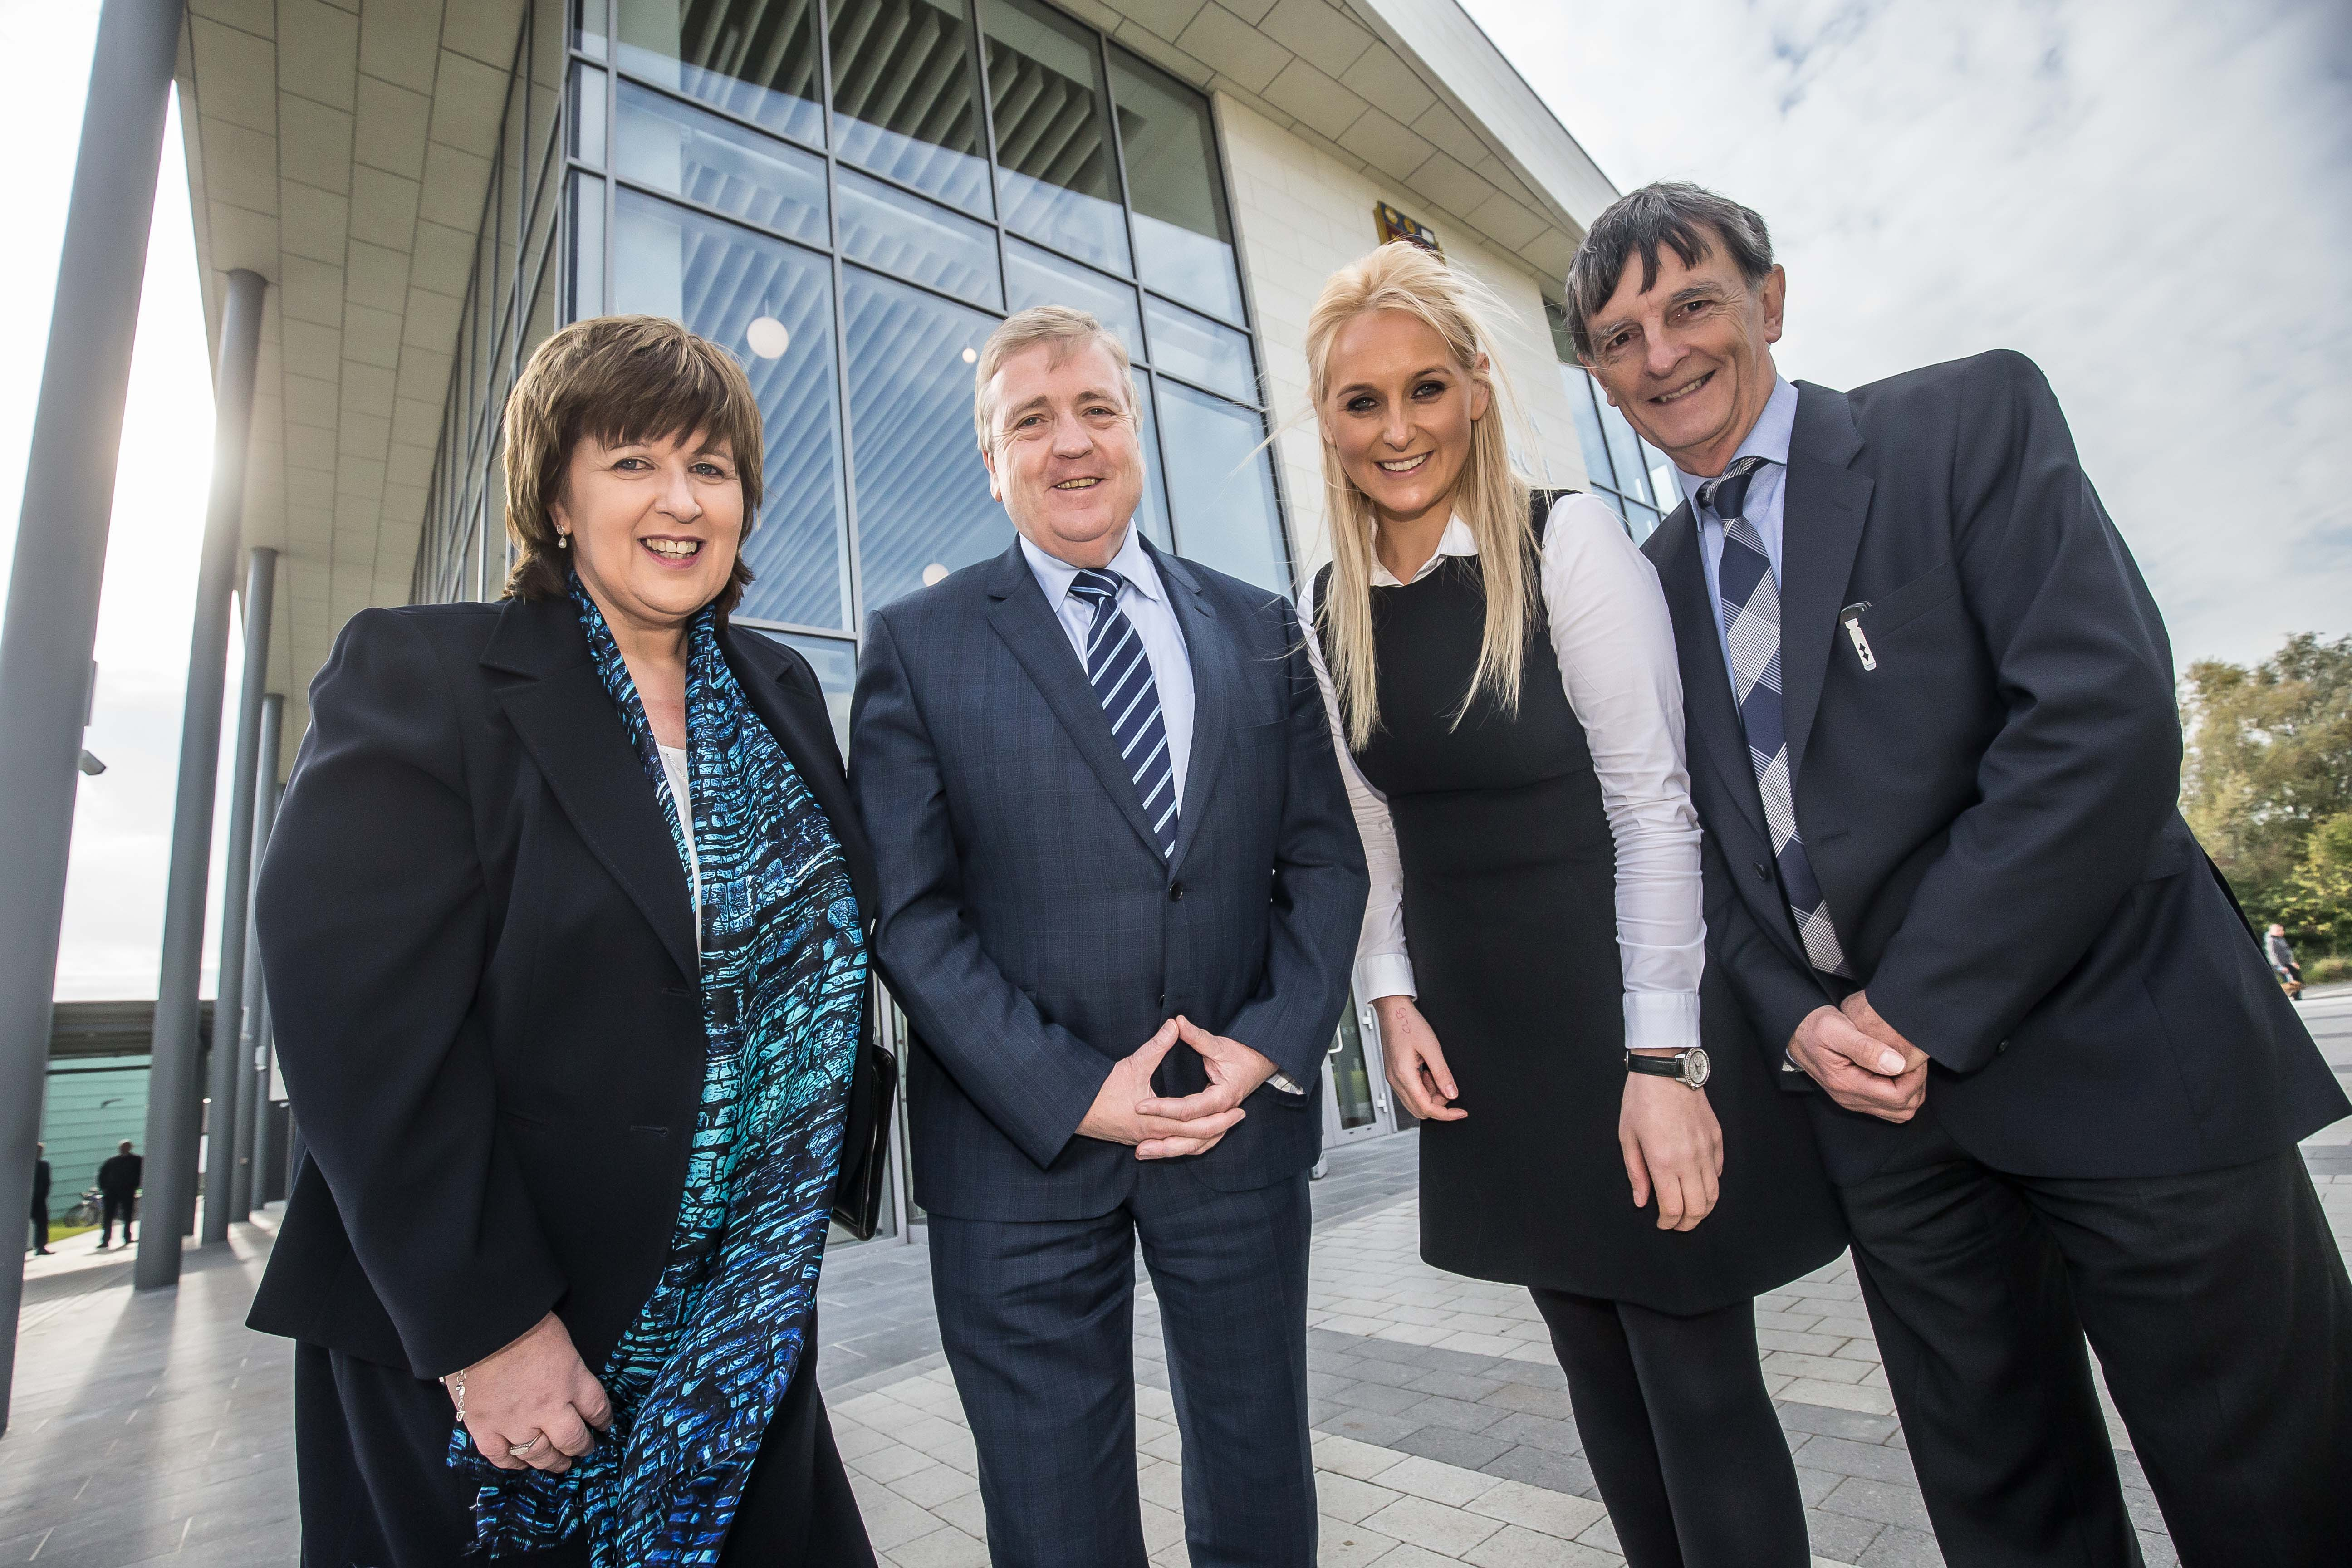 Minister launches new Design+ Technology Gateway initiative